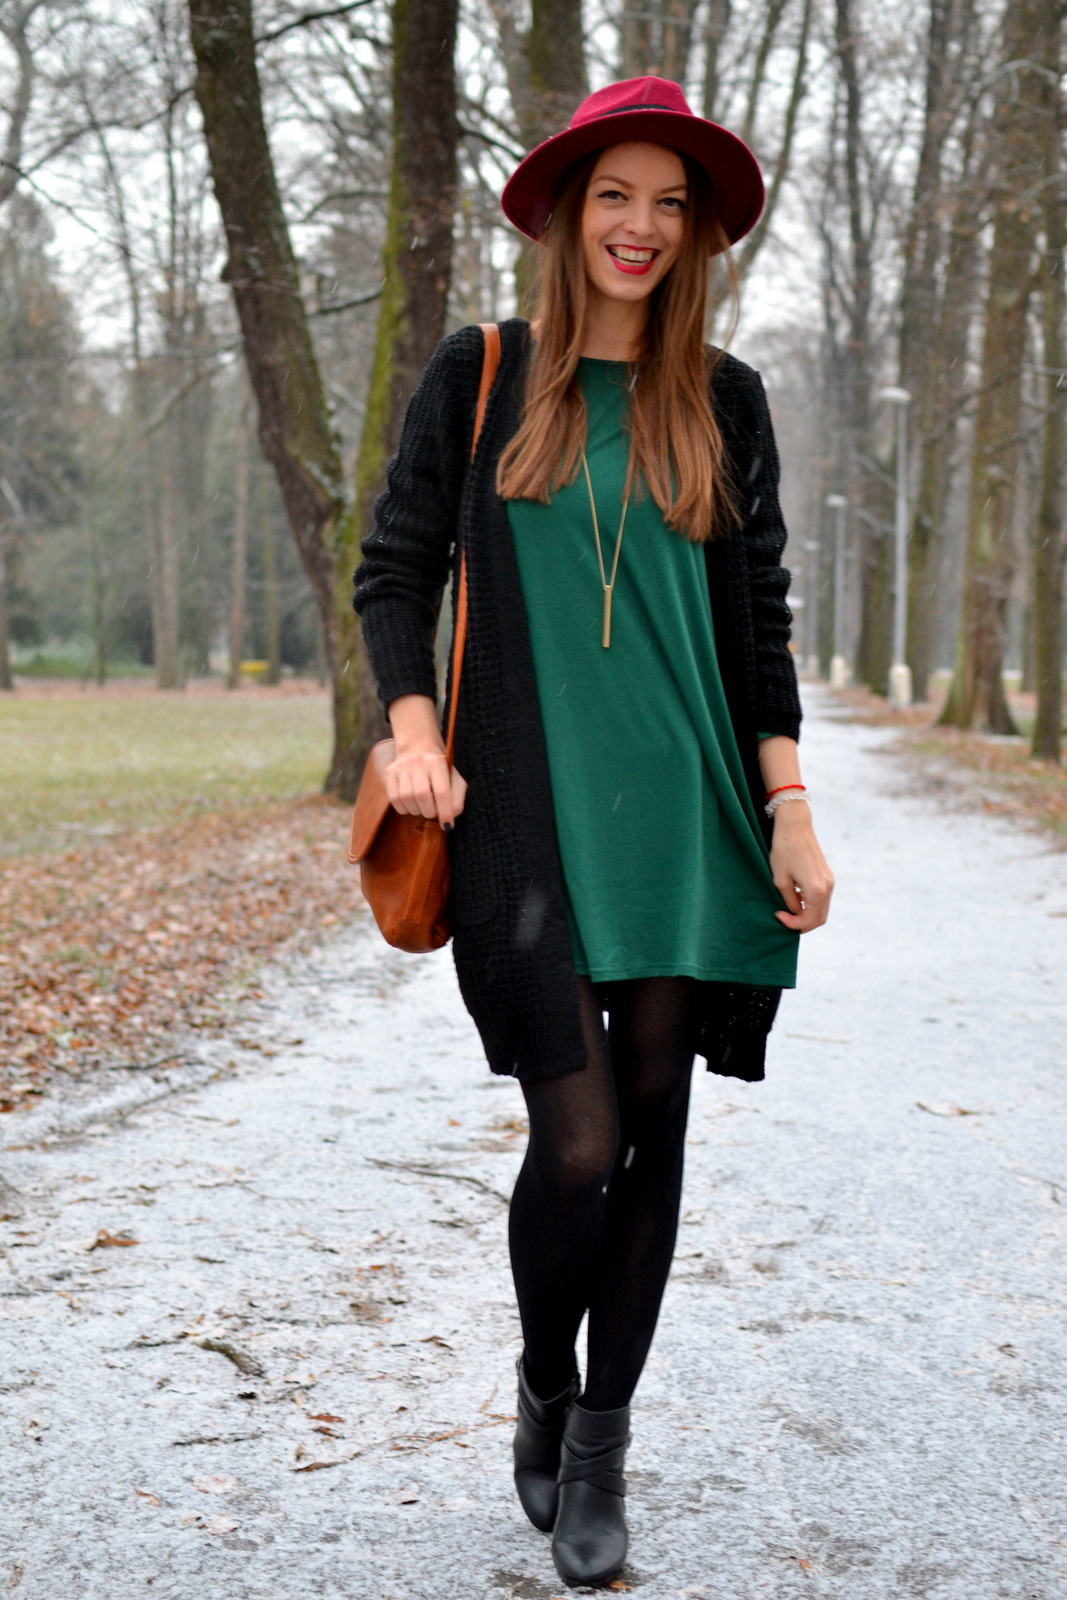 34f8933439c dress  HERE cardigan  HERE bag  HERE hat  HERE tights  f f boots  humanic  necklace  h m lipstick  chanel. Mademoiselle Iva ...